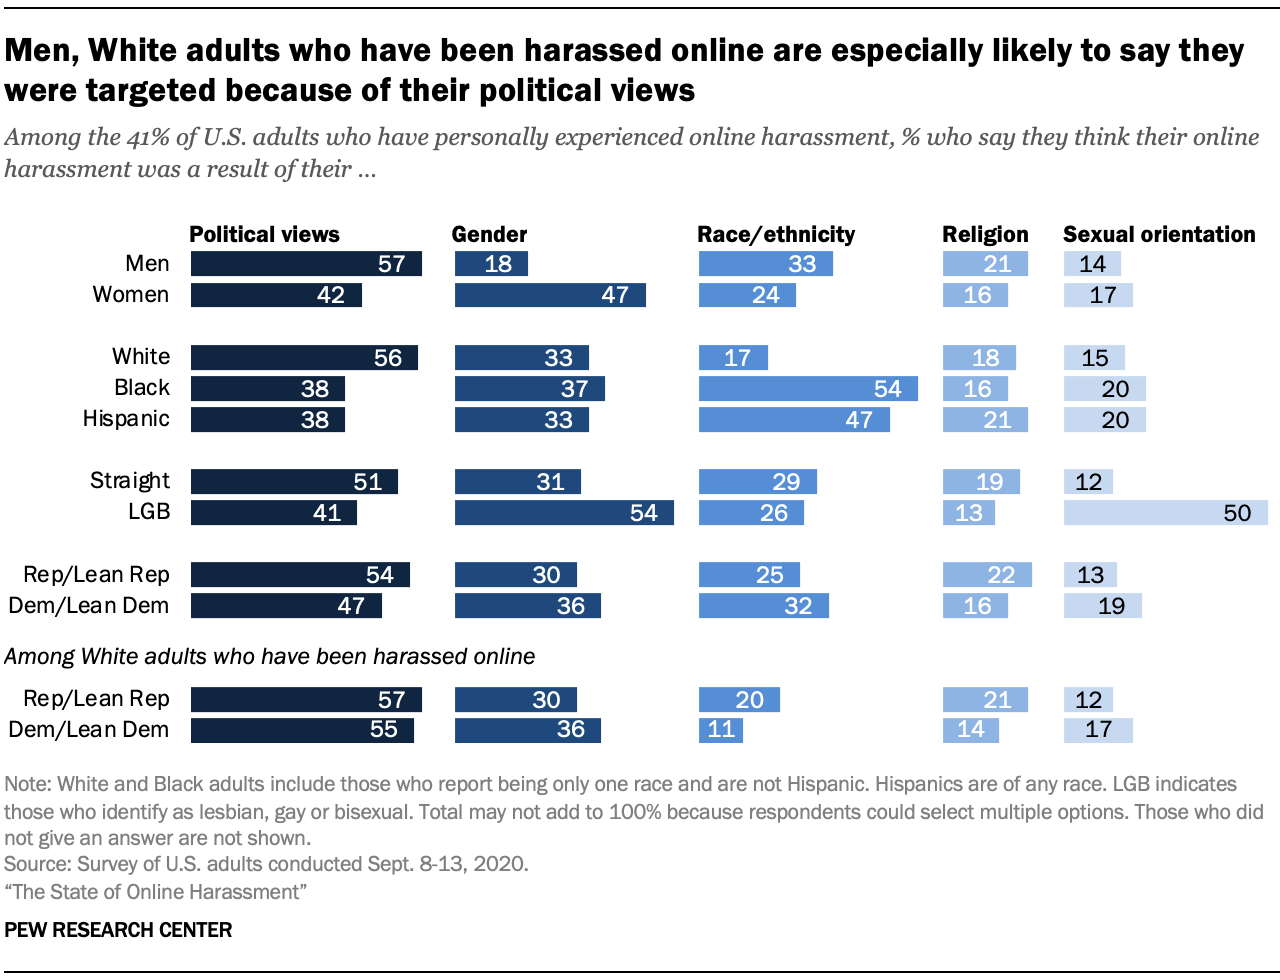 Men, White adults who have been harassed online are especially likely to say they were targeted because of their political views